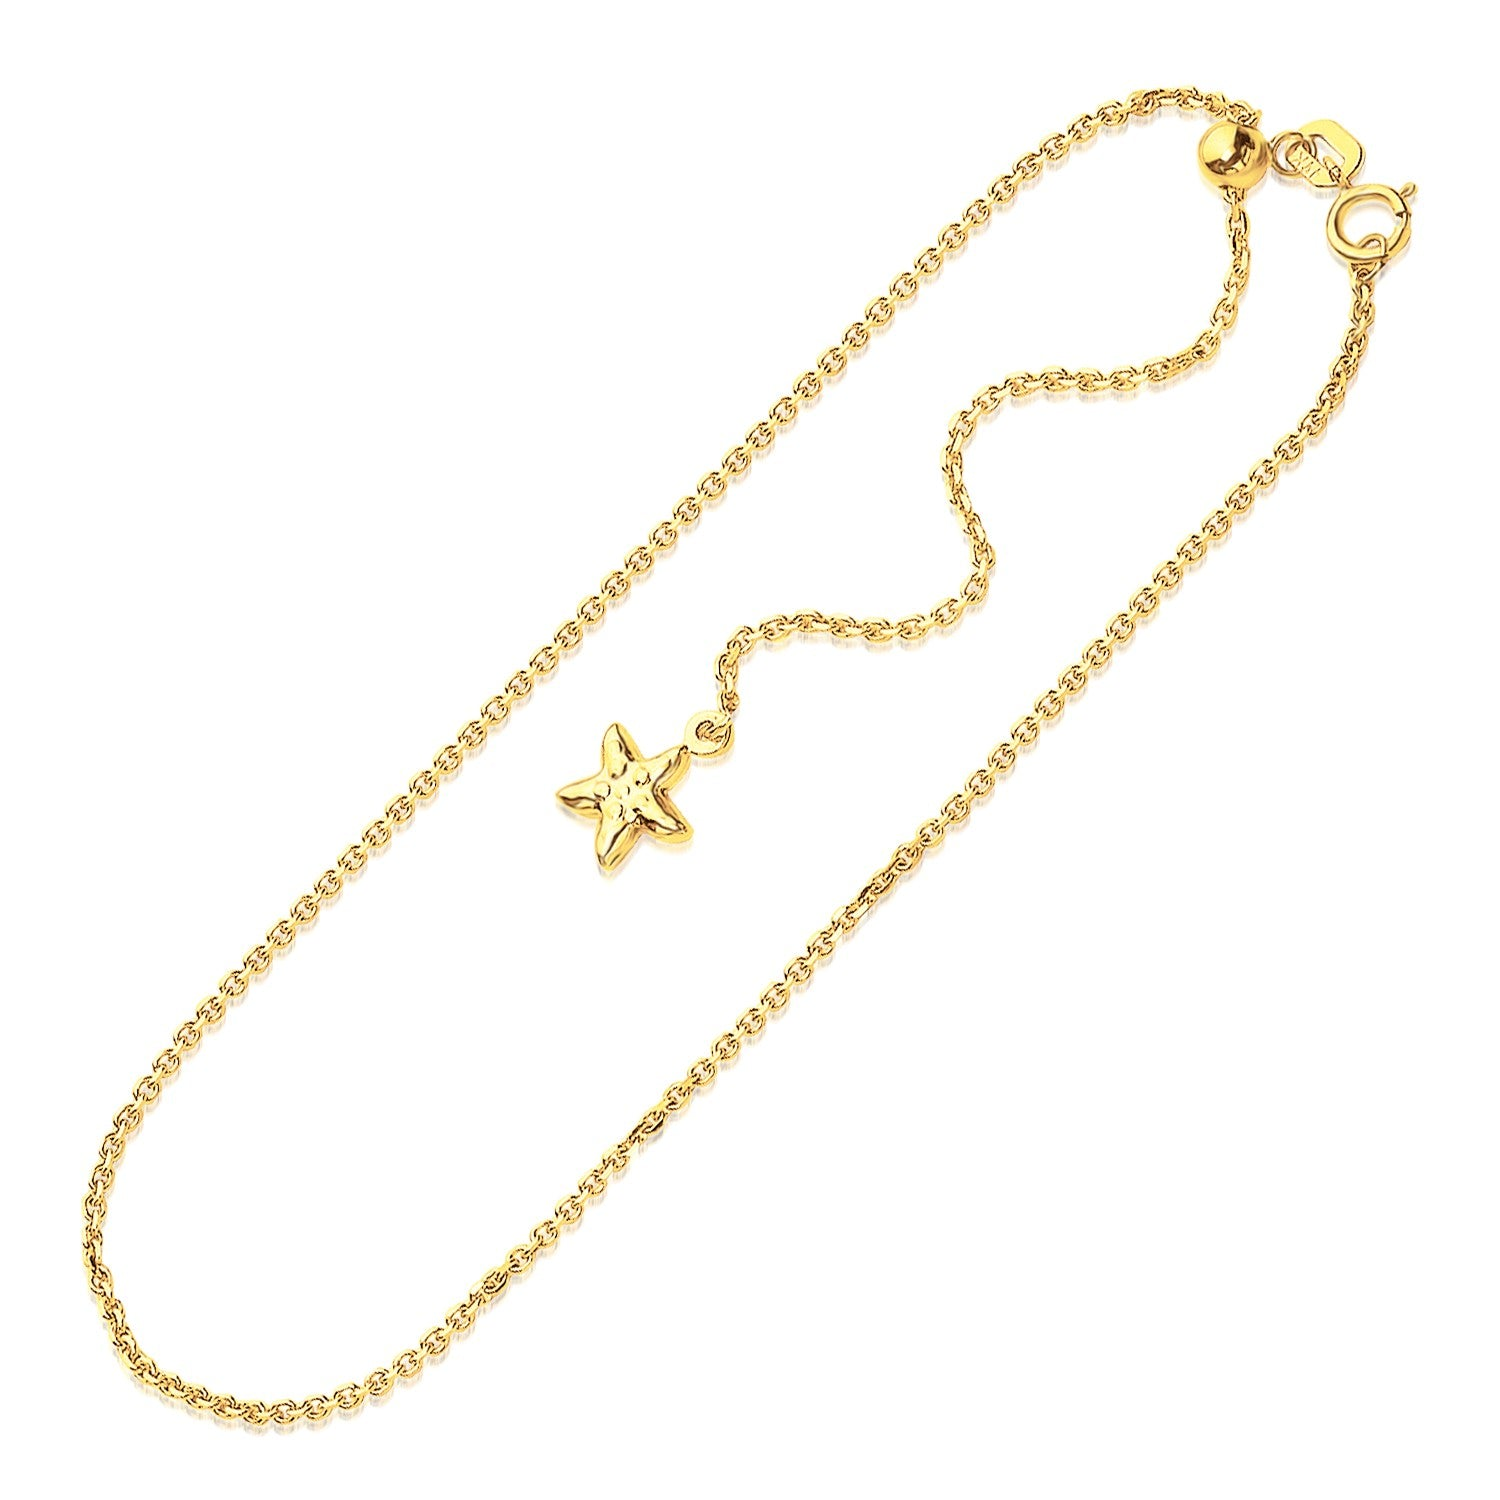 14K Yellow Gold Star Accent Cable Link Adjustable Anklet - Uniquepedia.com